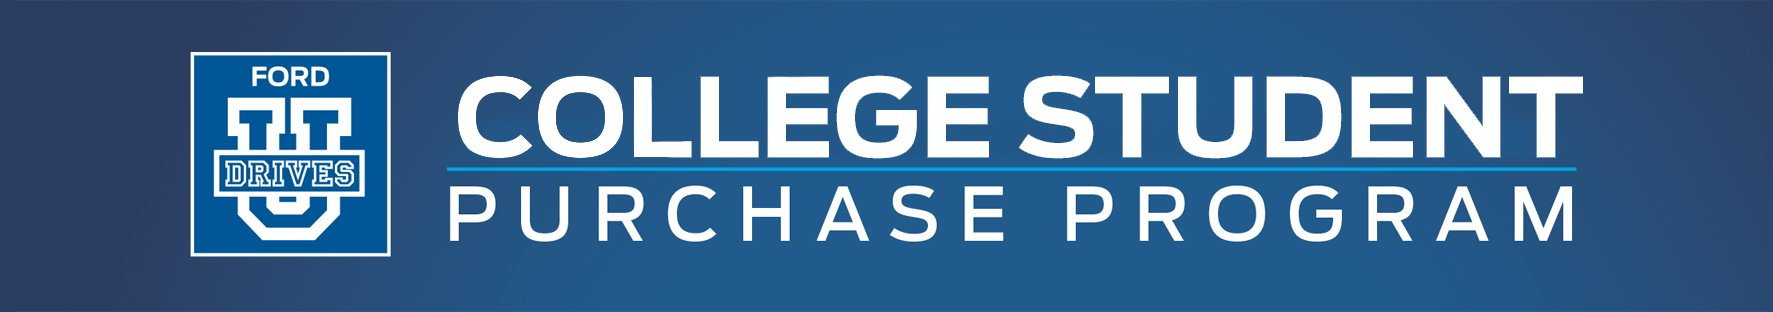 2016 COLLEGE STUDENT $500 PURCHASE PROGRAM Bonus Cash